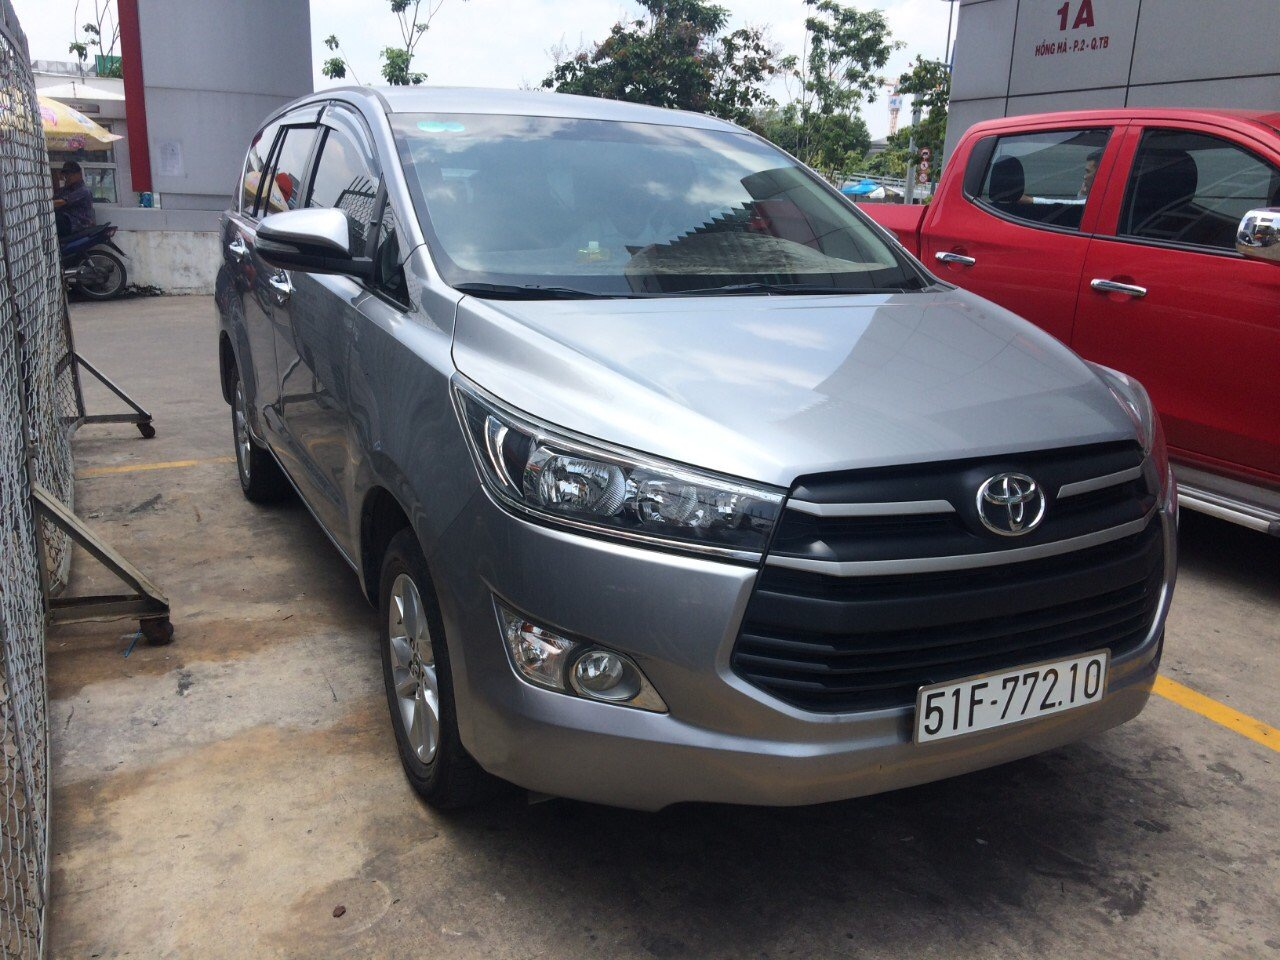 MONTHLY CAR RENTAL WITH DRIVER IN HO CHI MINH CITY